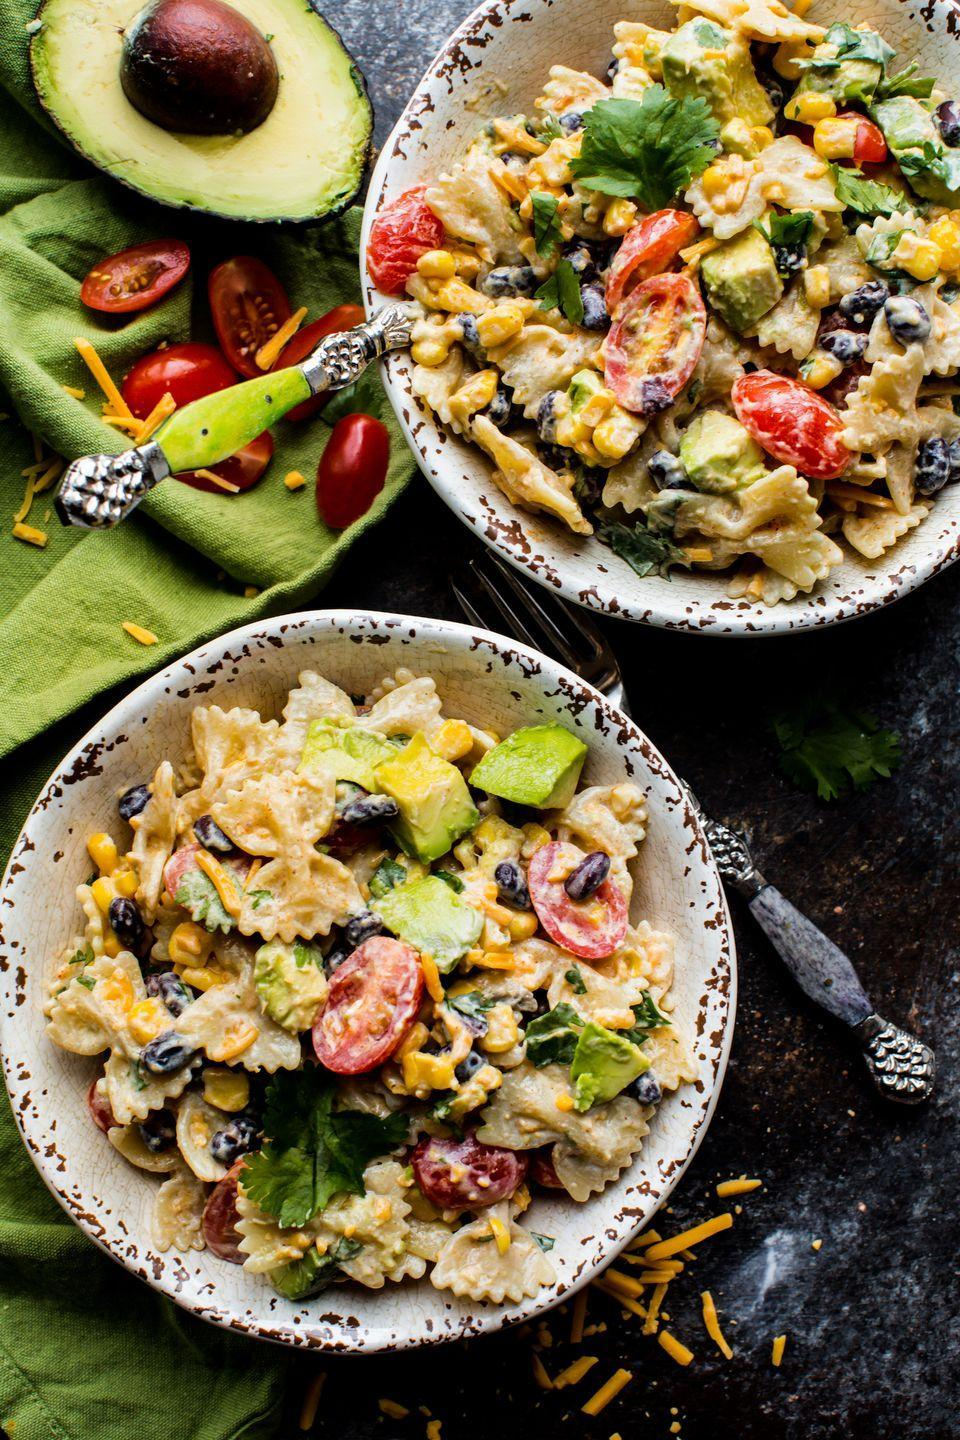 """<p>This kicked up pasta salad with a zesty Greek yogurt dressing is full of the fixings from zesty taco seasoning to cilantro, cheddar cheese, avocado, black beans, and corn. So easy to mix up ahead of time, too!</p><p>Get the recipe from <a href=""""/cooking/recipe-ideas/recipes/a53448/southwestern-pasta-salad-recipe/"""" data-ylk=""""slk:Delish"""" class=""""link rapid-noclick-resp"""">Delish</a>.</p>"""